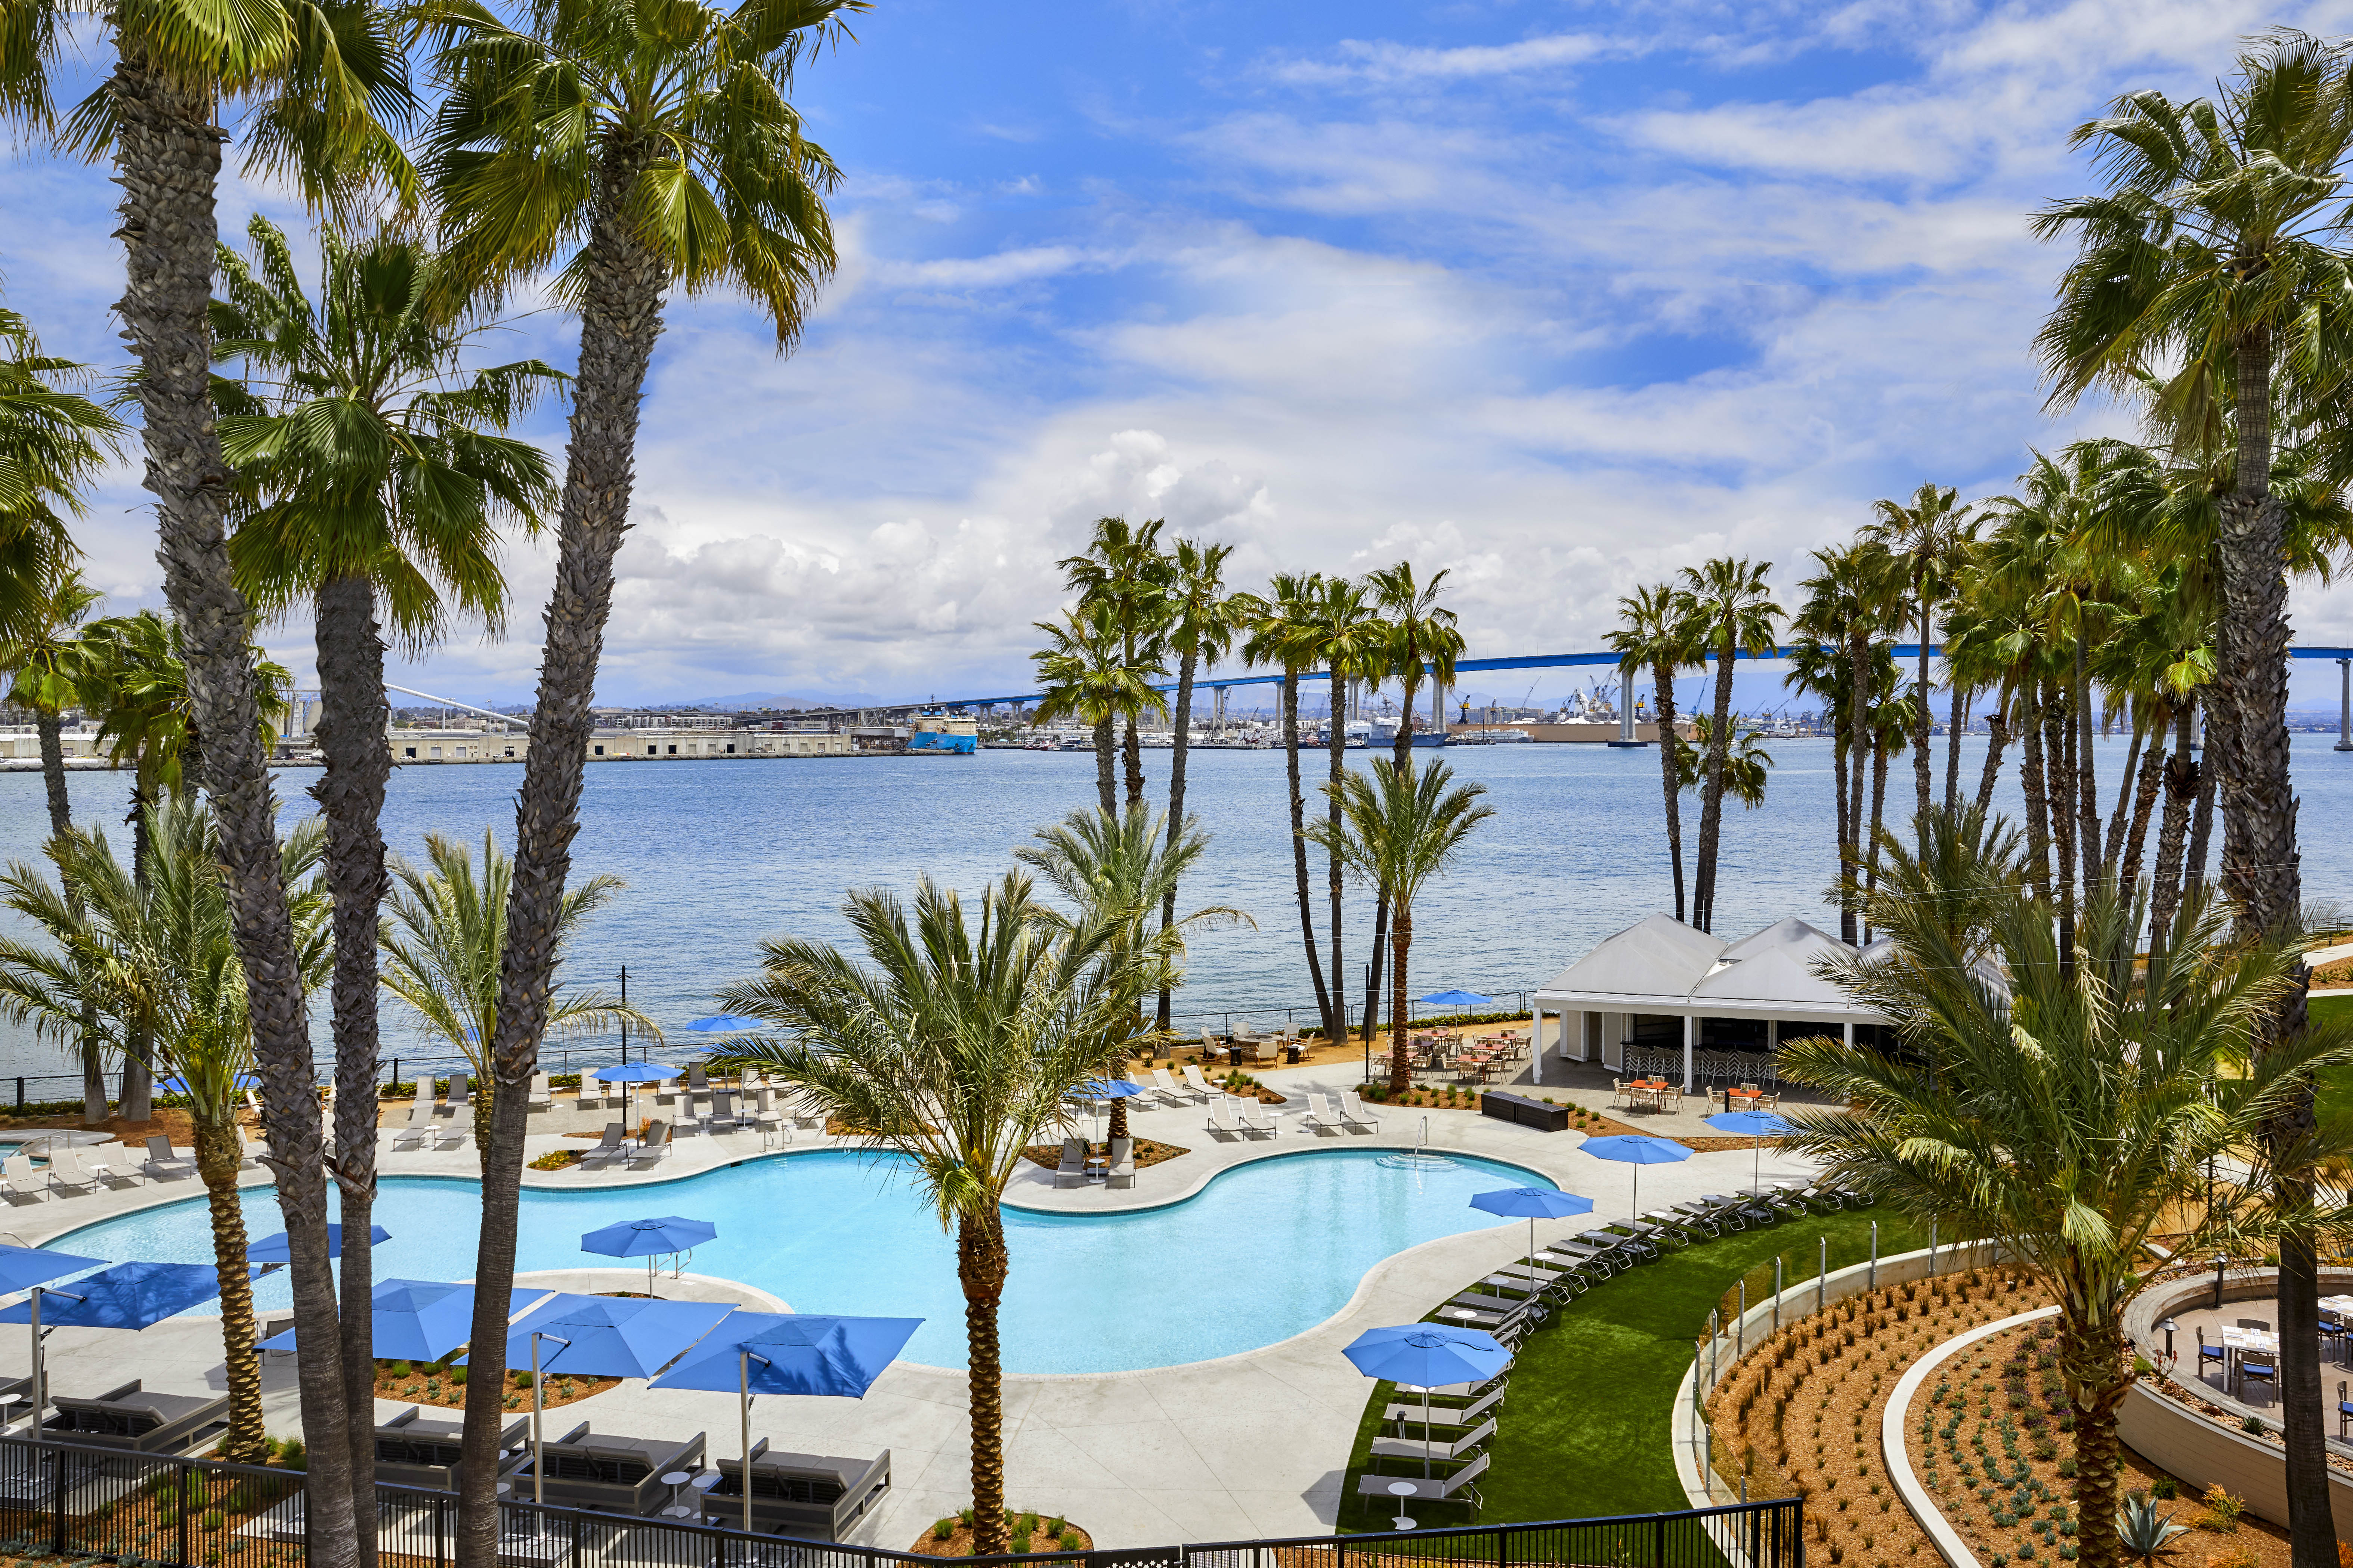 The outdoor pool overlooking the San Diego Bay and Coronado Bridge on a sunny day.